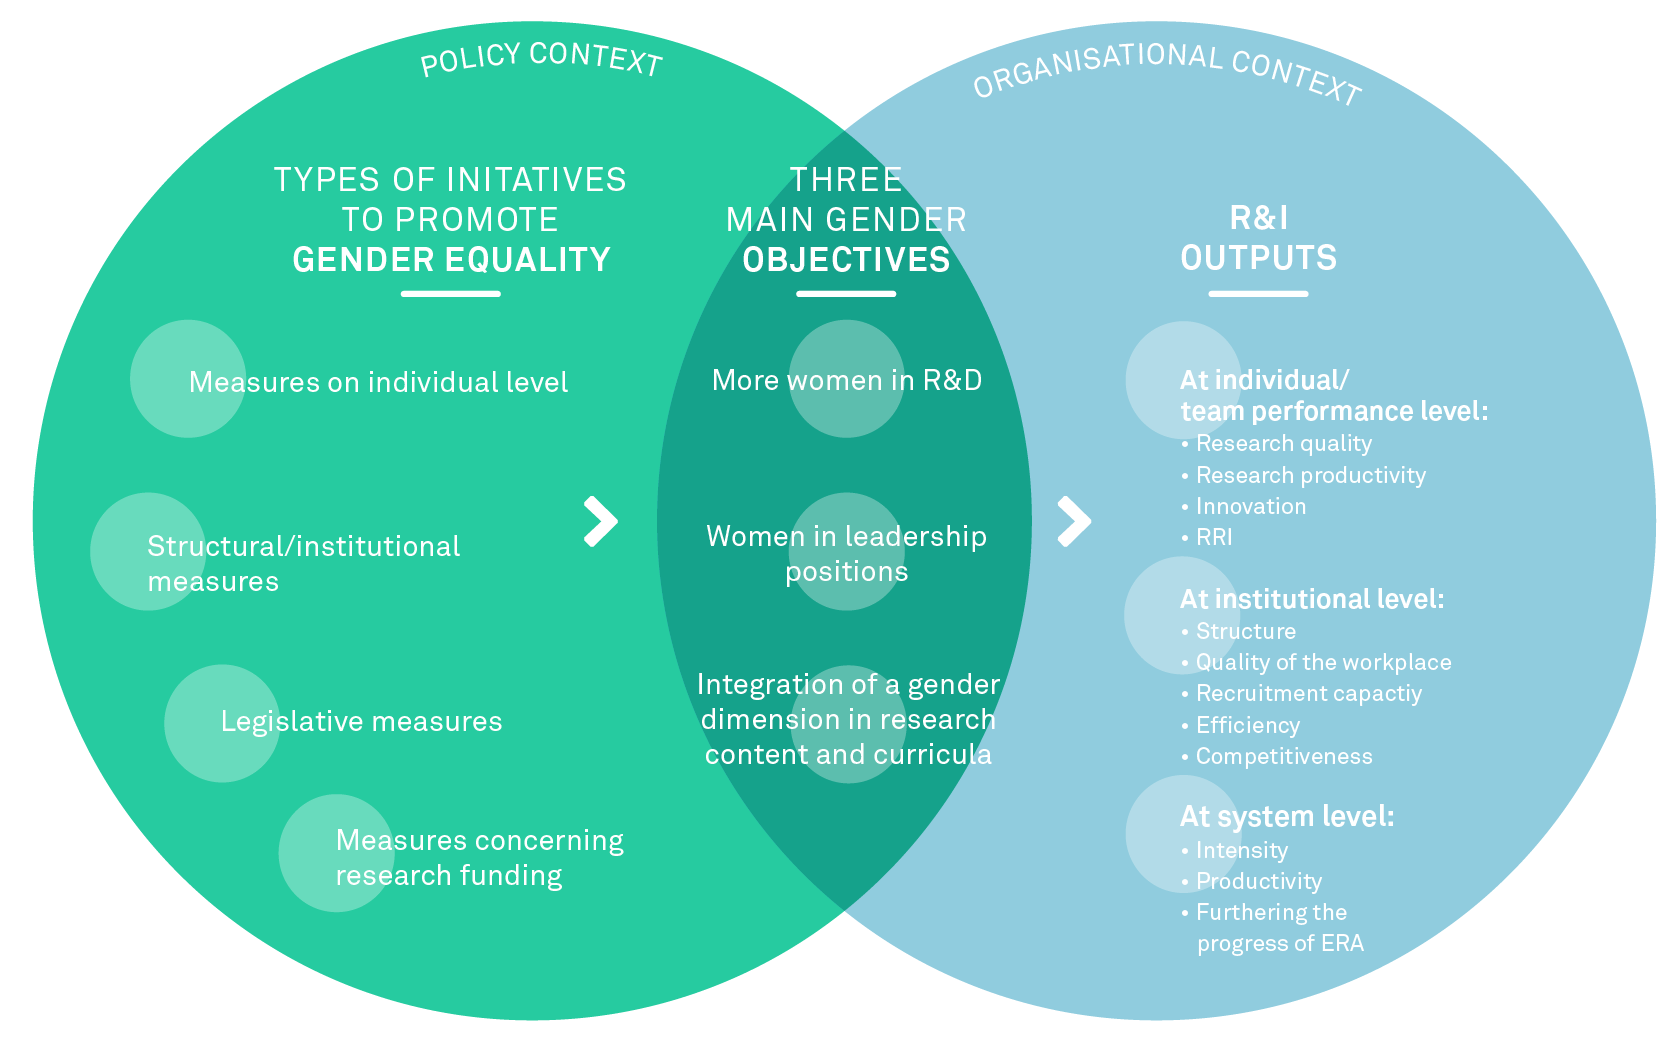 Main elements of the conceptual model to evaluate the impacts of gender equality measures on RTDI